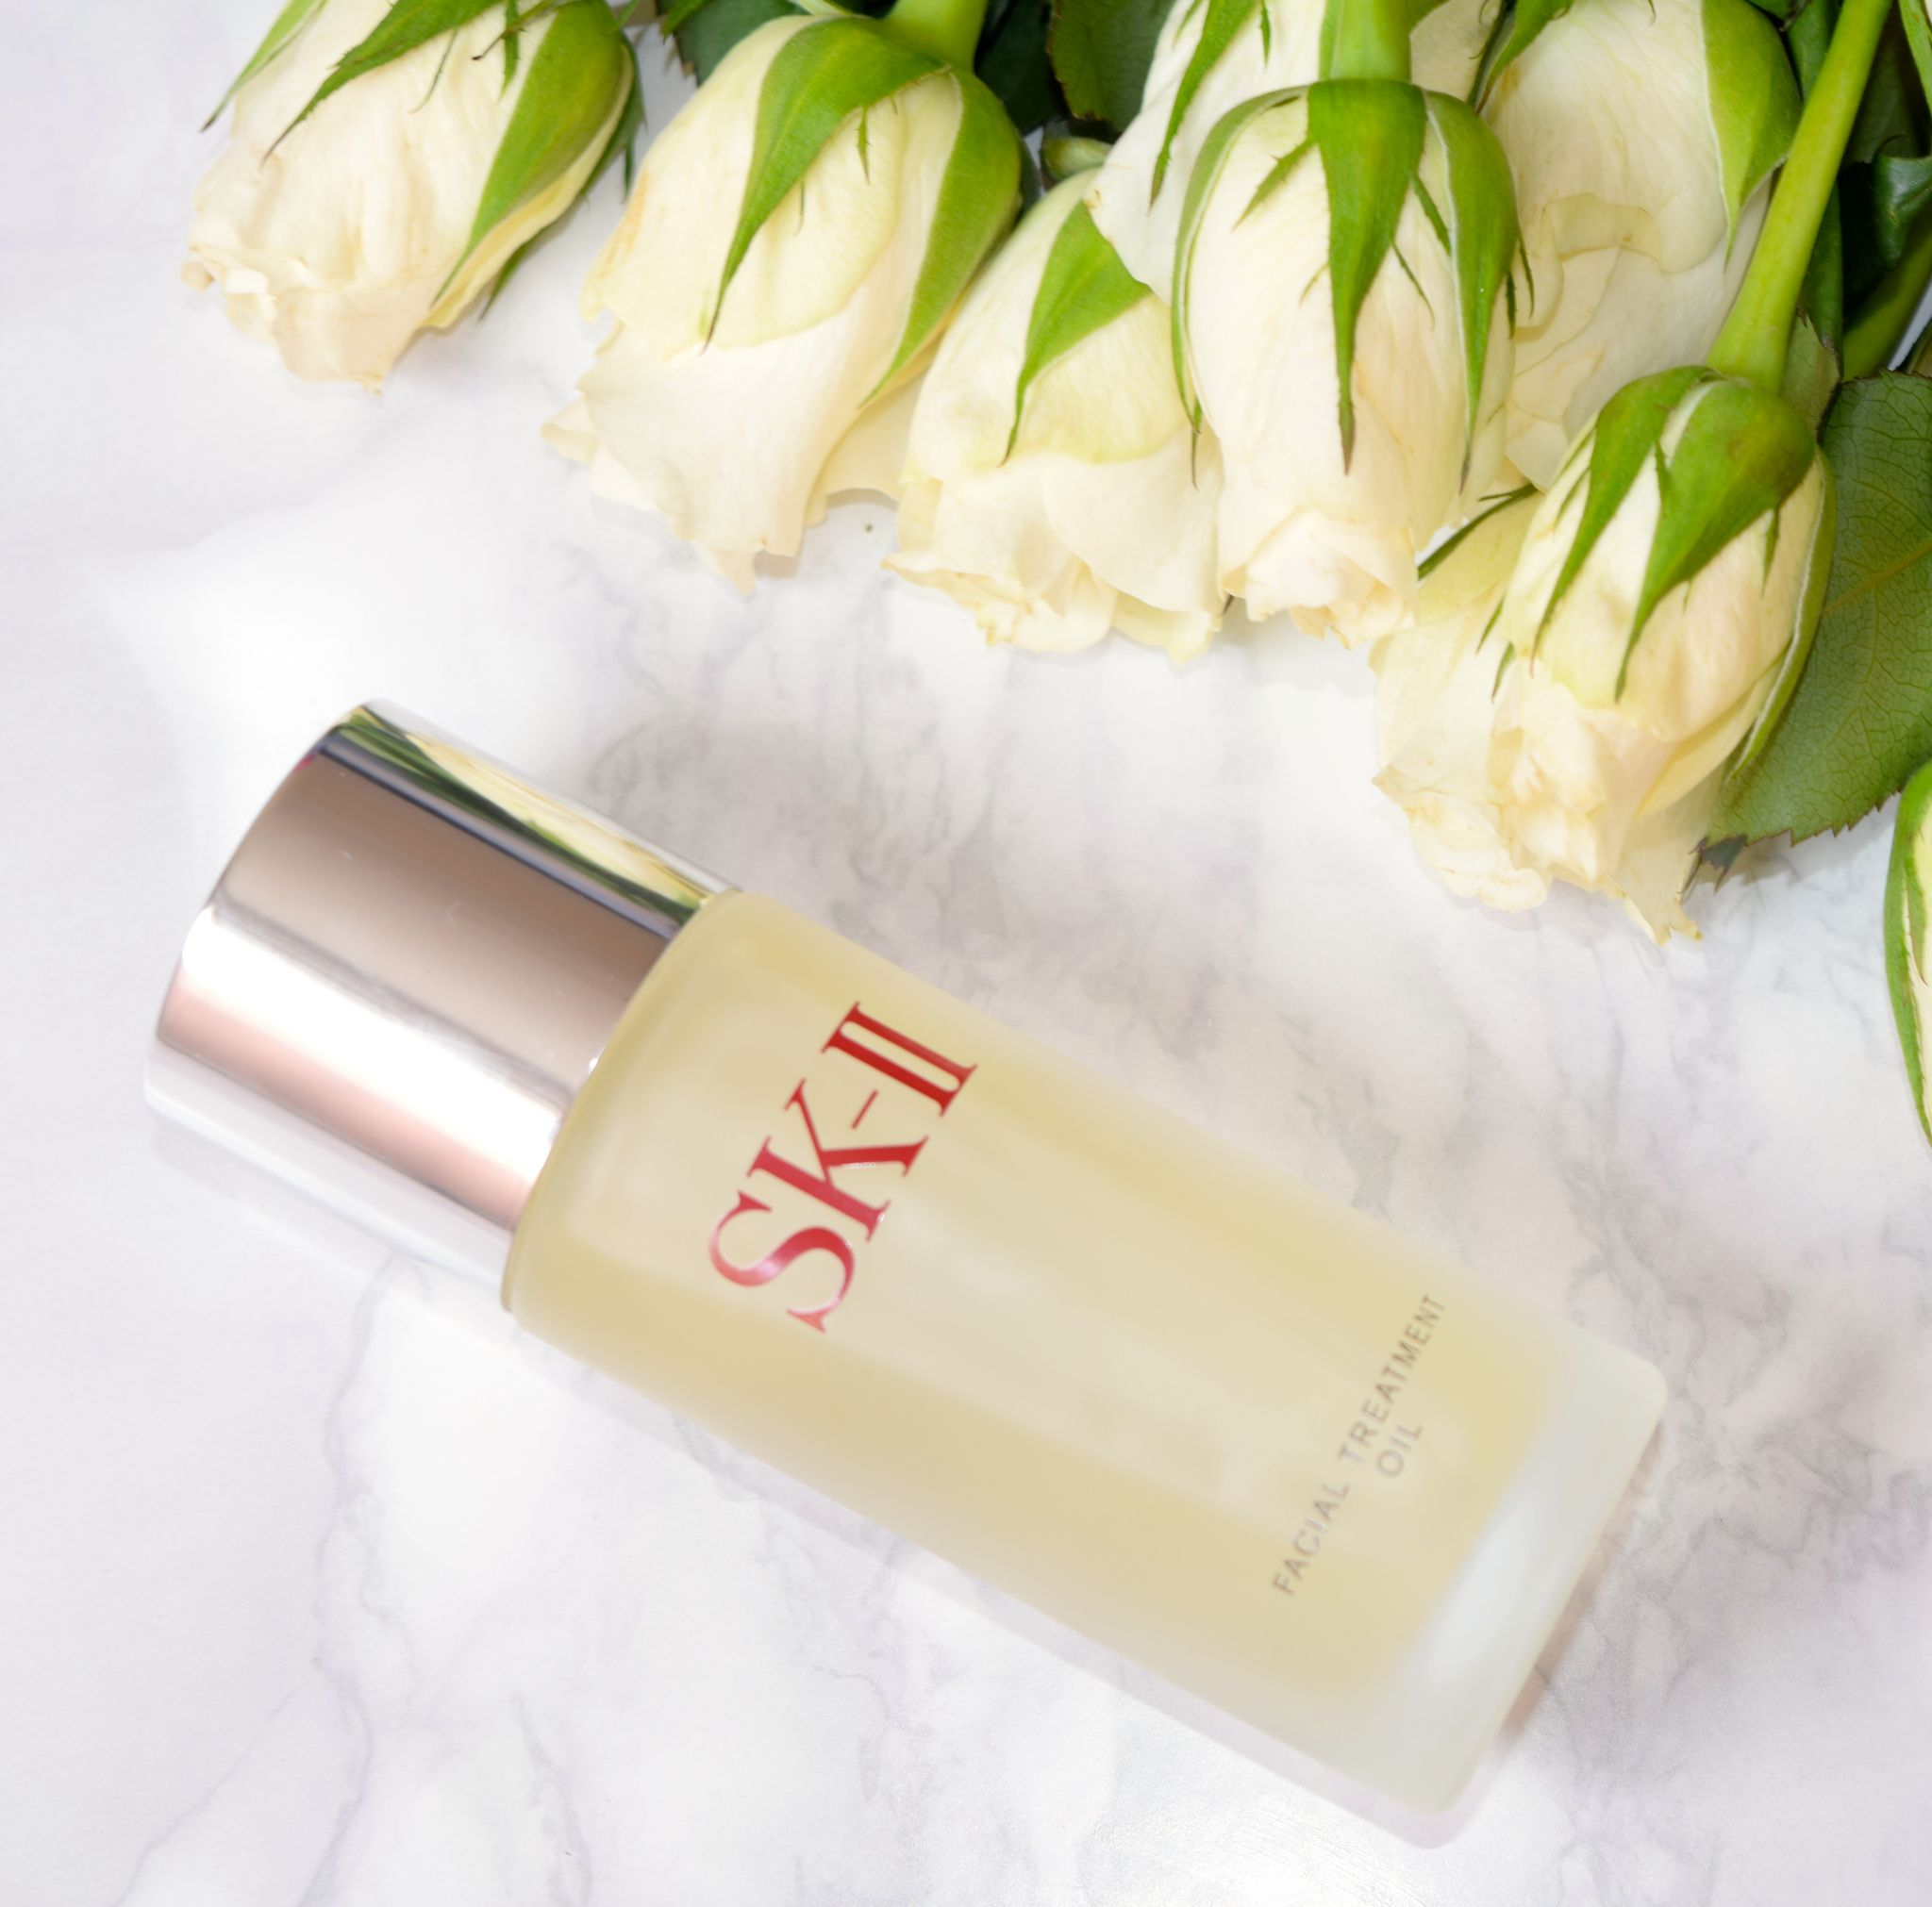 SK-II Facial Treatment Oil 2